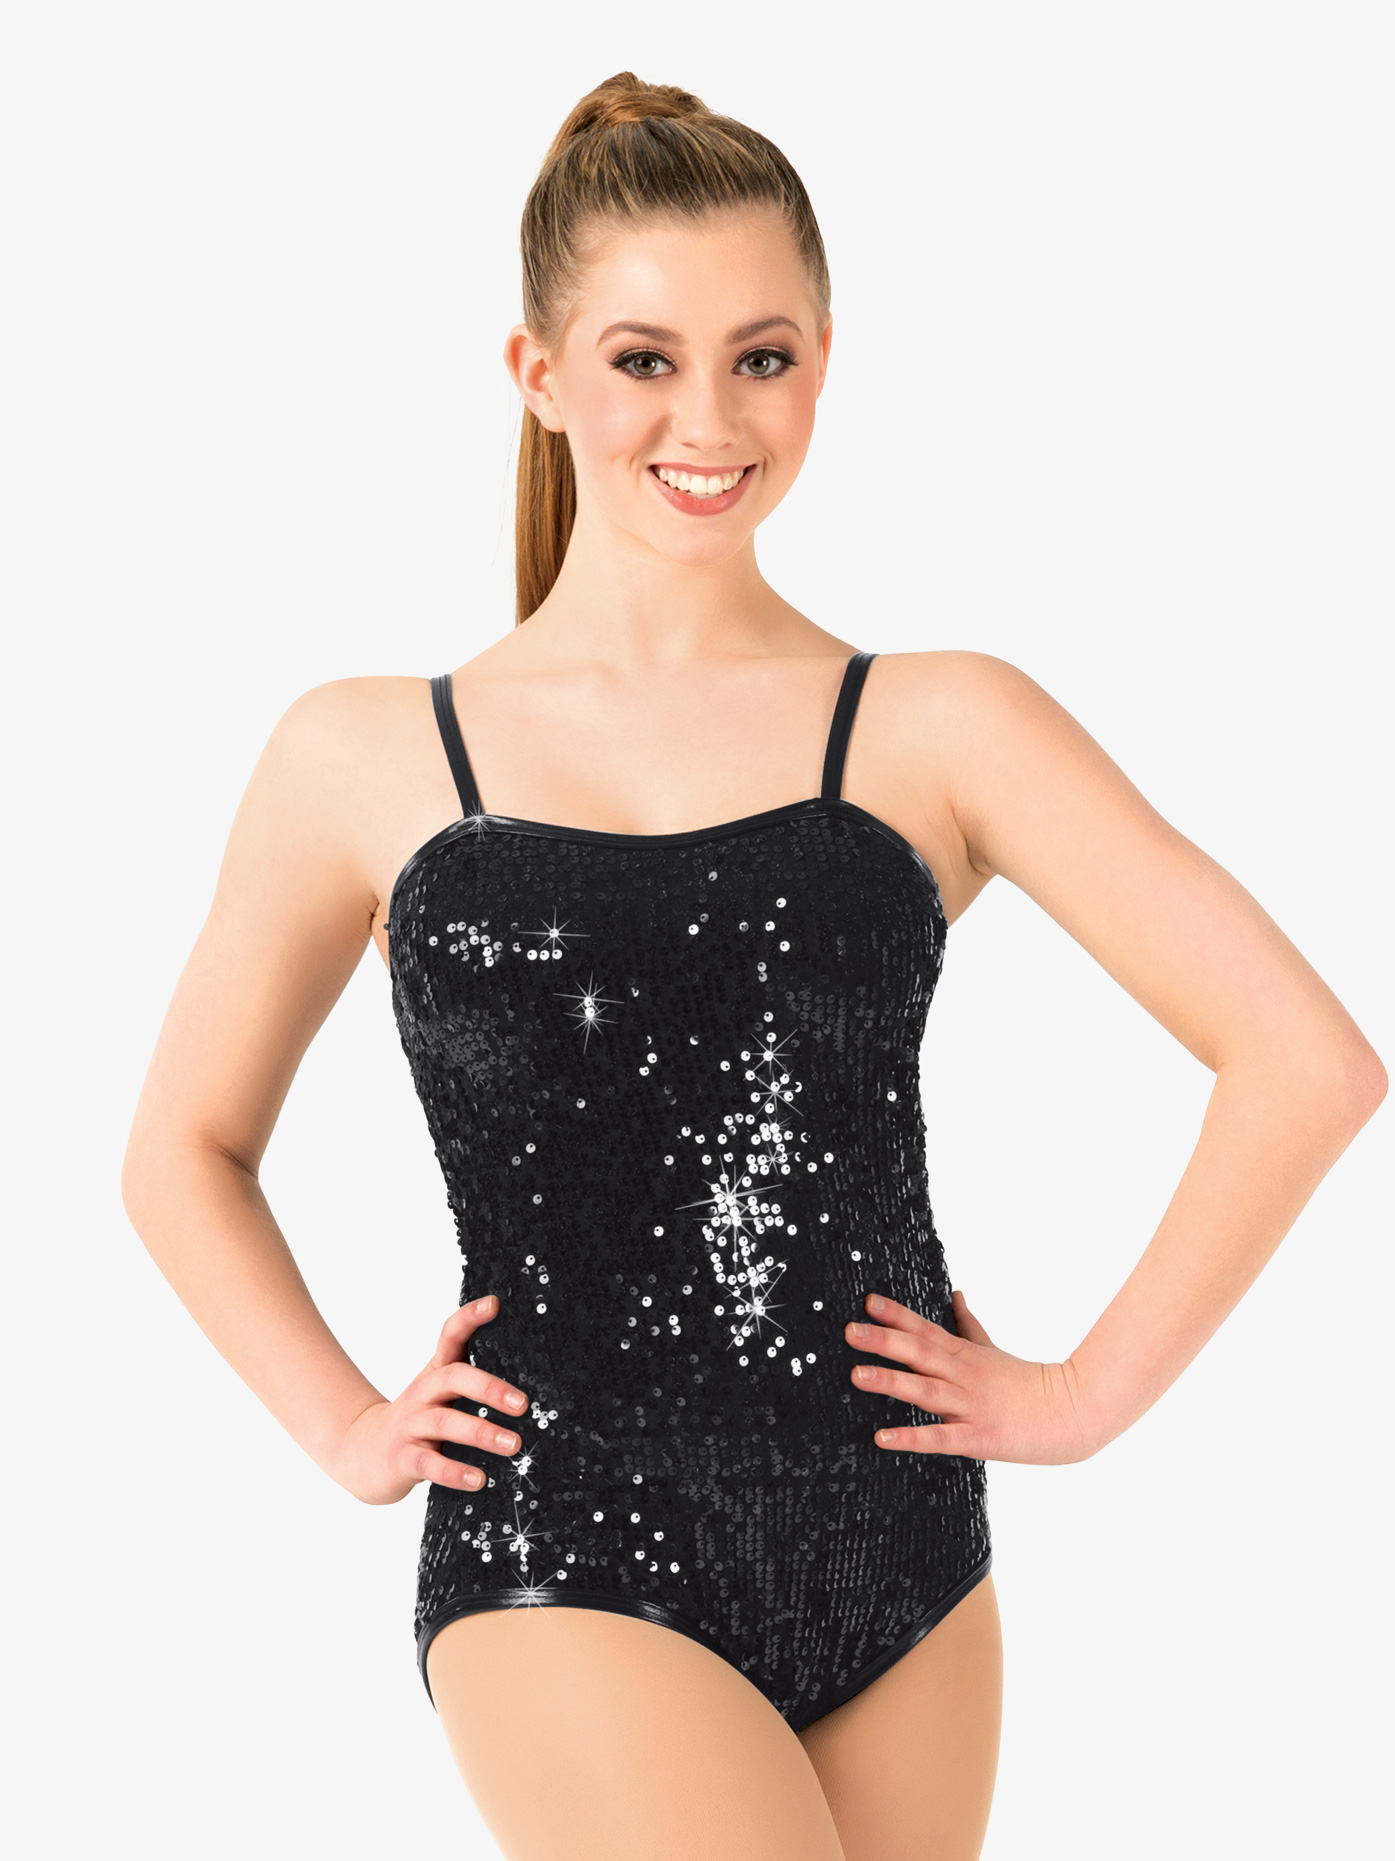 Double Platinum Adult Sequin Camisole Leotard N7309